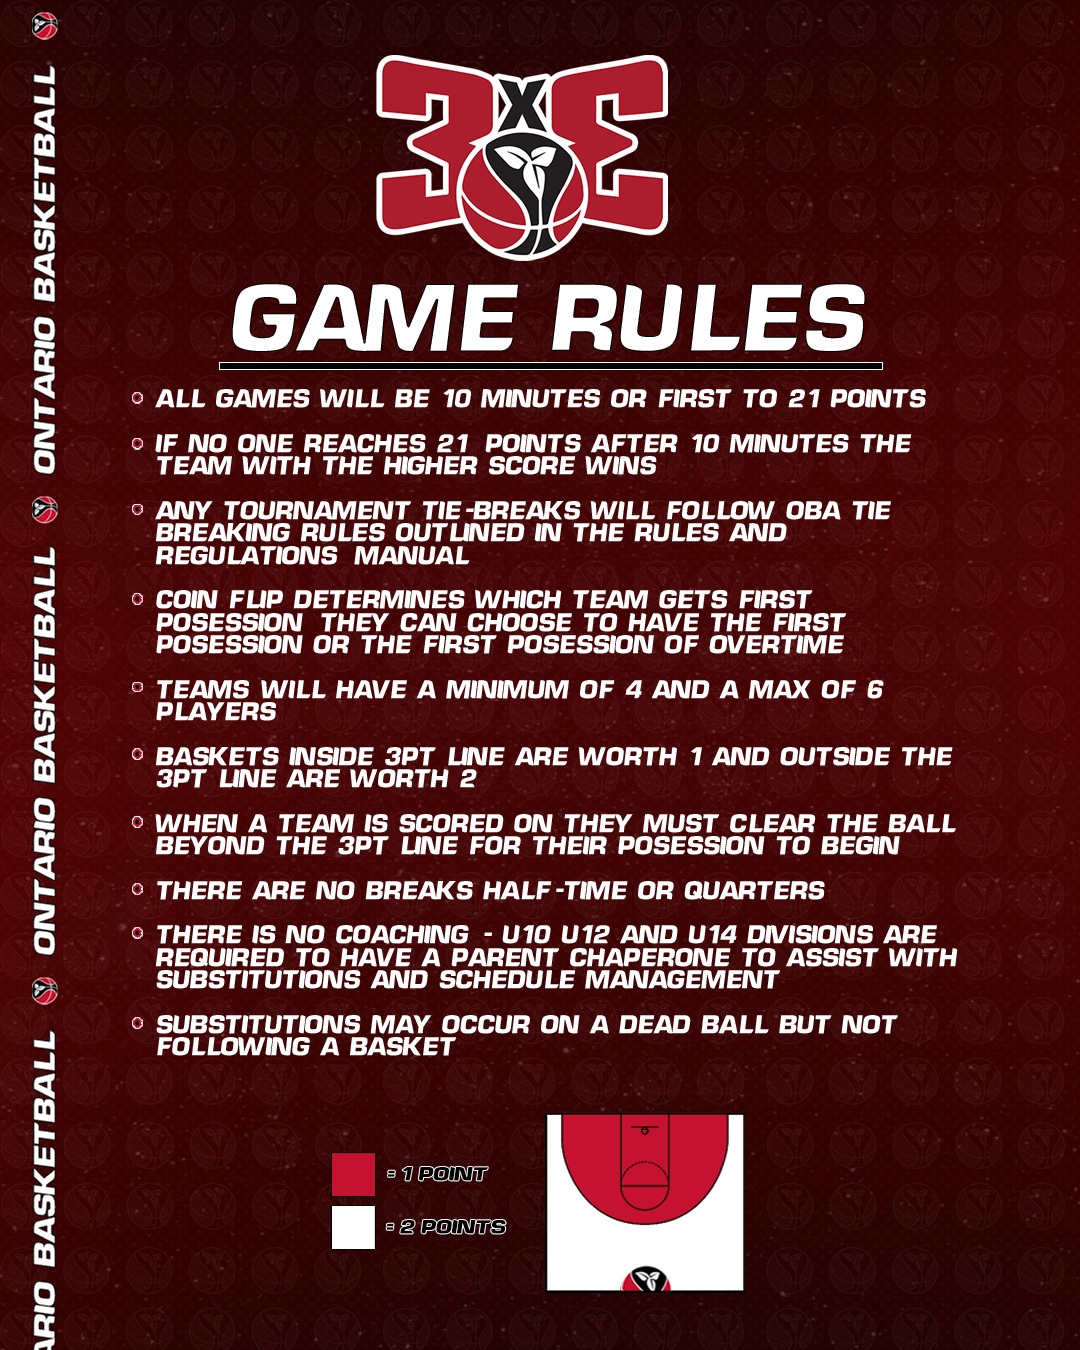 3x3 game rules 2021